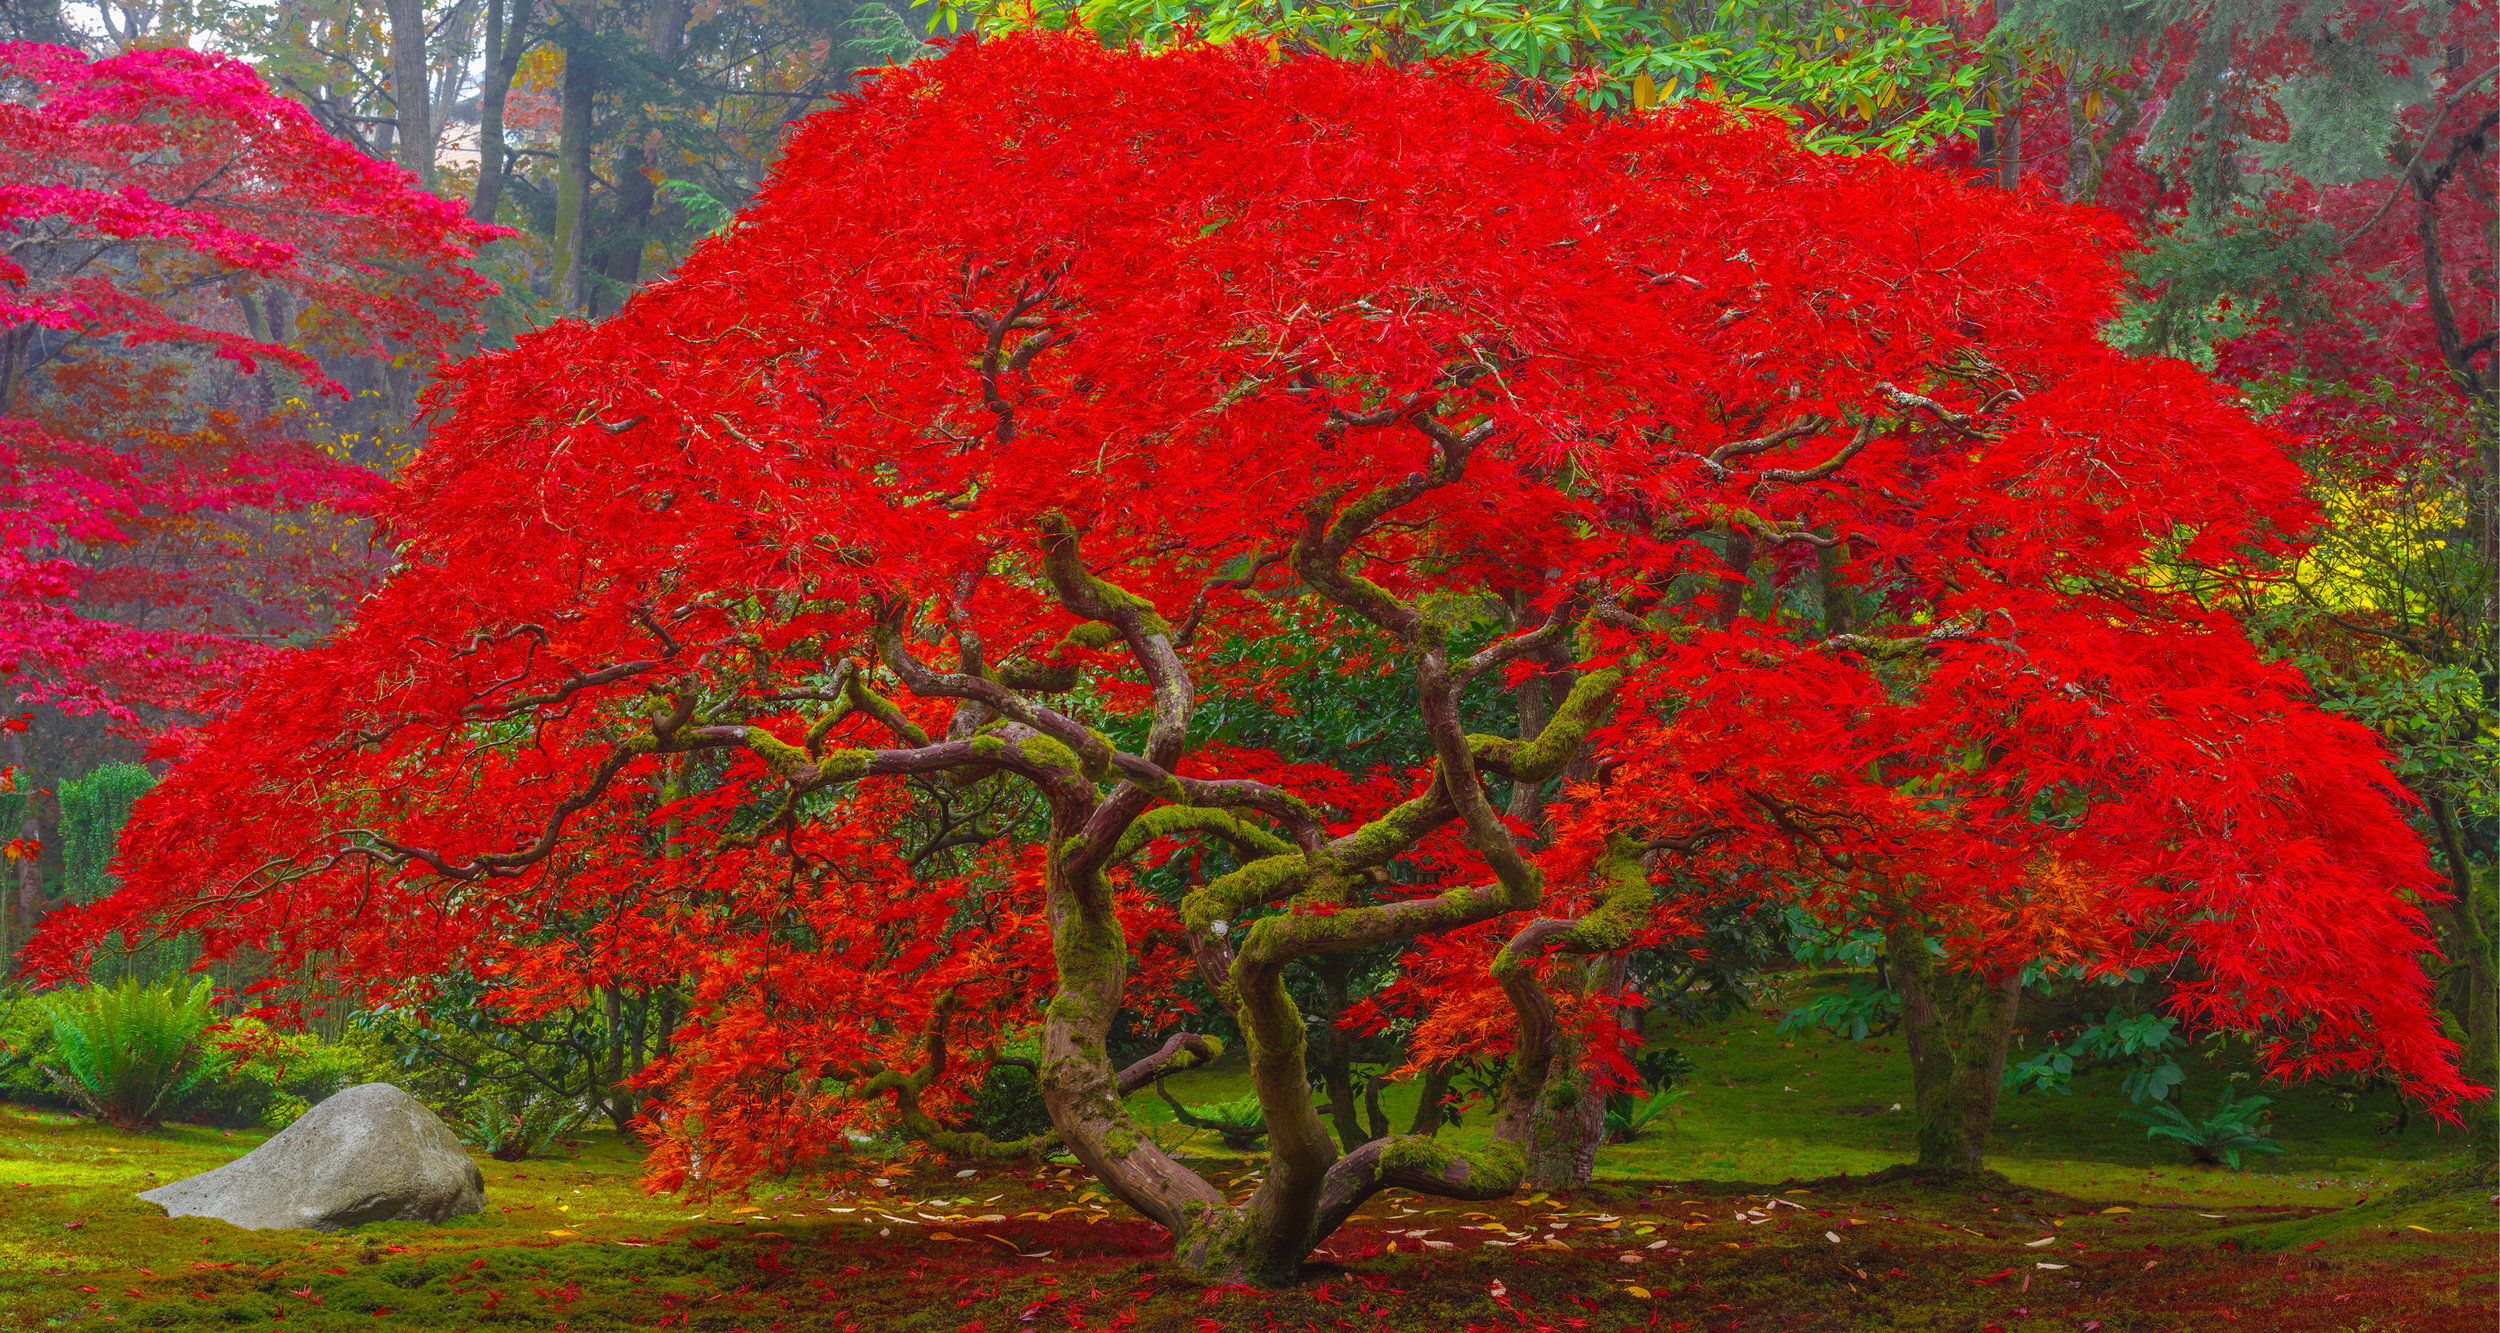 Avendasora is a fine art photograph for sale by Jason Matias. A Japanese maple captured in the full bloom of Autumn, its leaves are as red a the freshly adorned lips of a women. So red they could be described as scarlet. The leaves have just begun to fall below the twisting branches of the Japanese maple. Above the tree the atmosphere is filled with a Pacific Northwest fog.